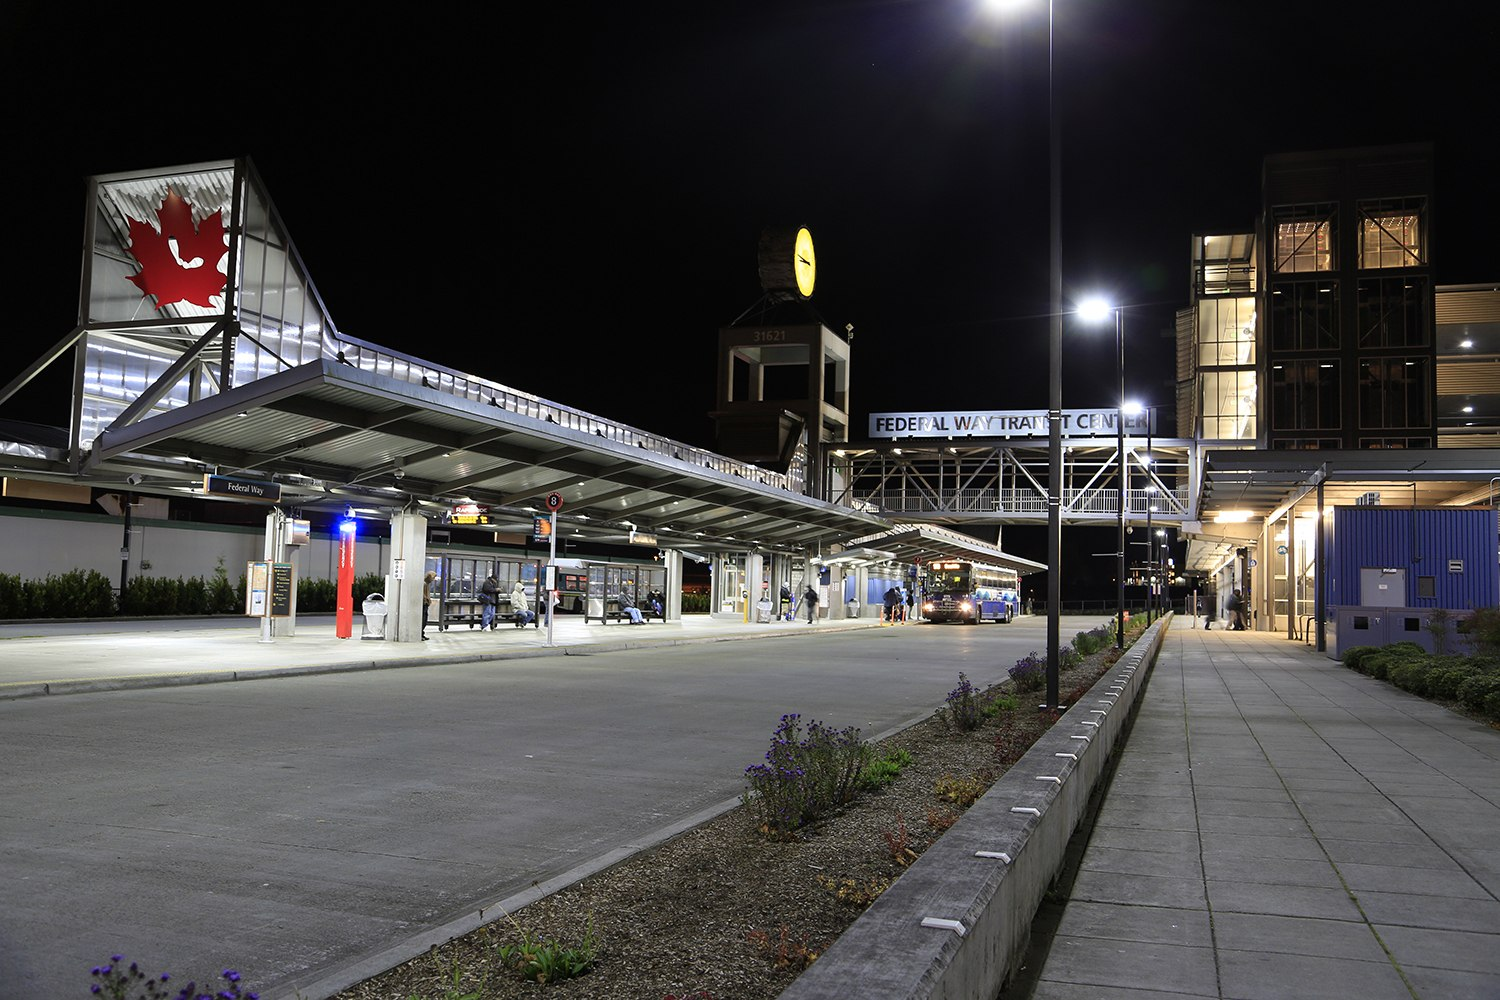 fed way bus station